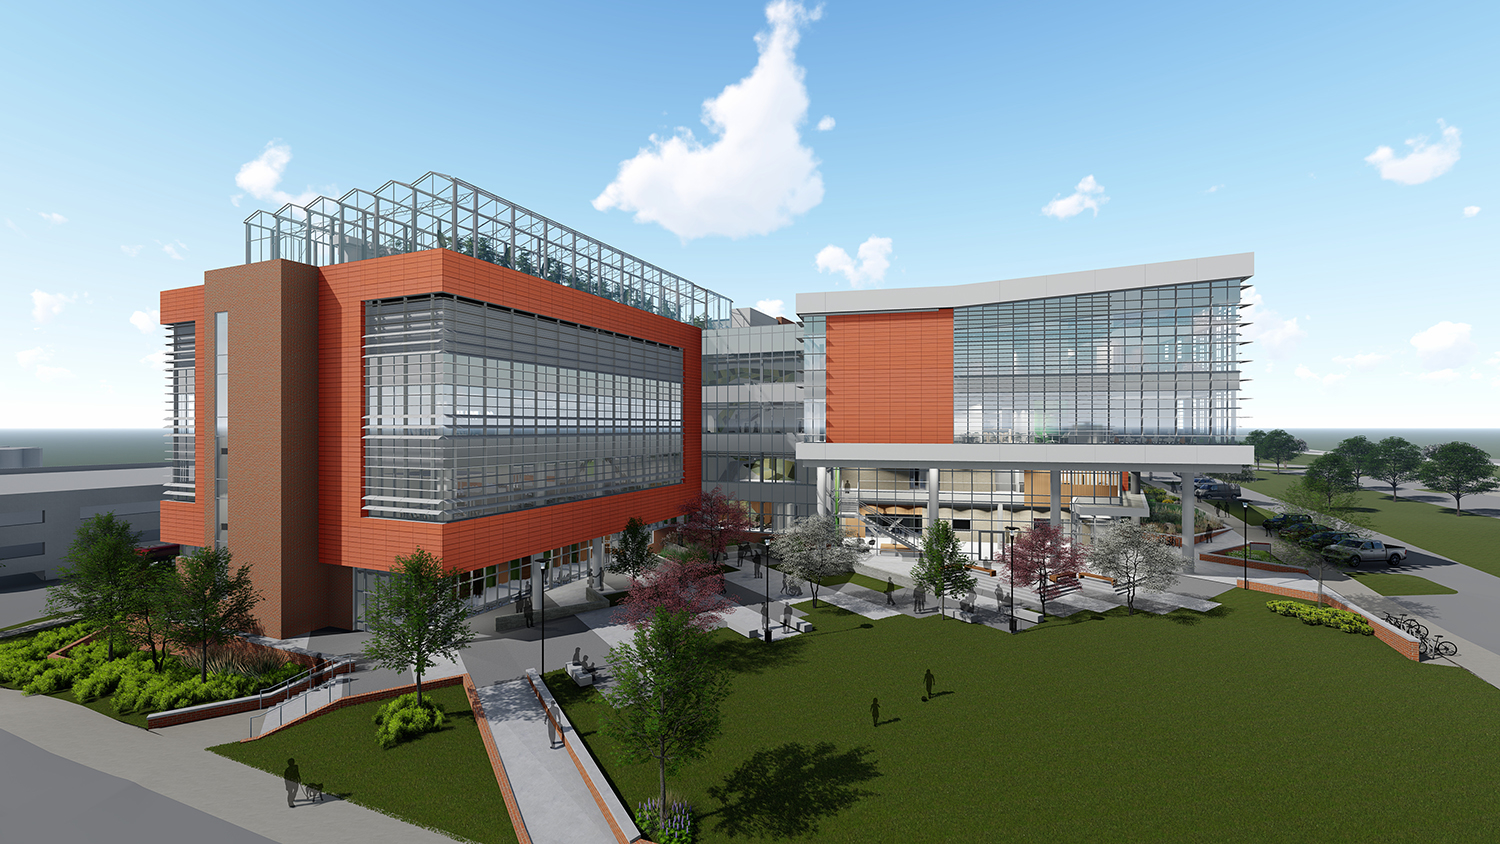 Artist rendering of a large building featuring lots of glass.